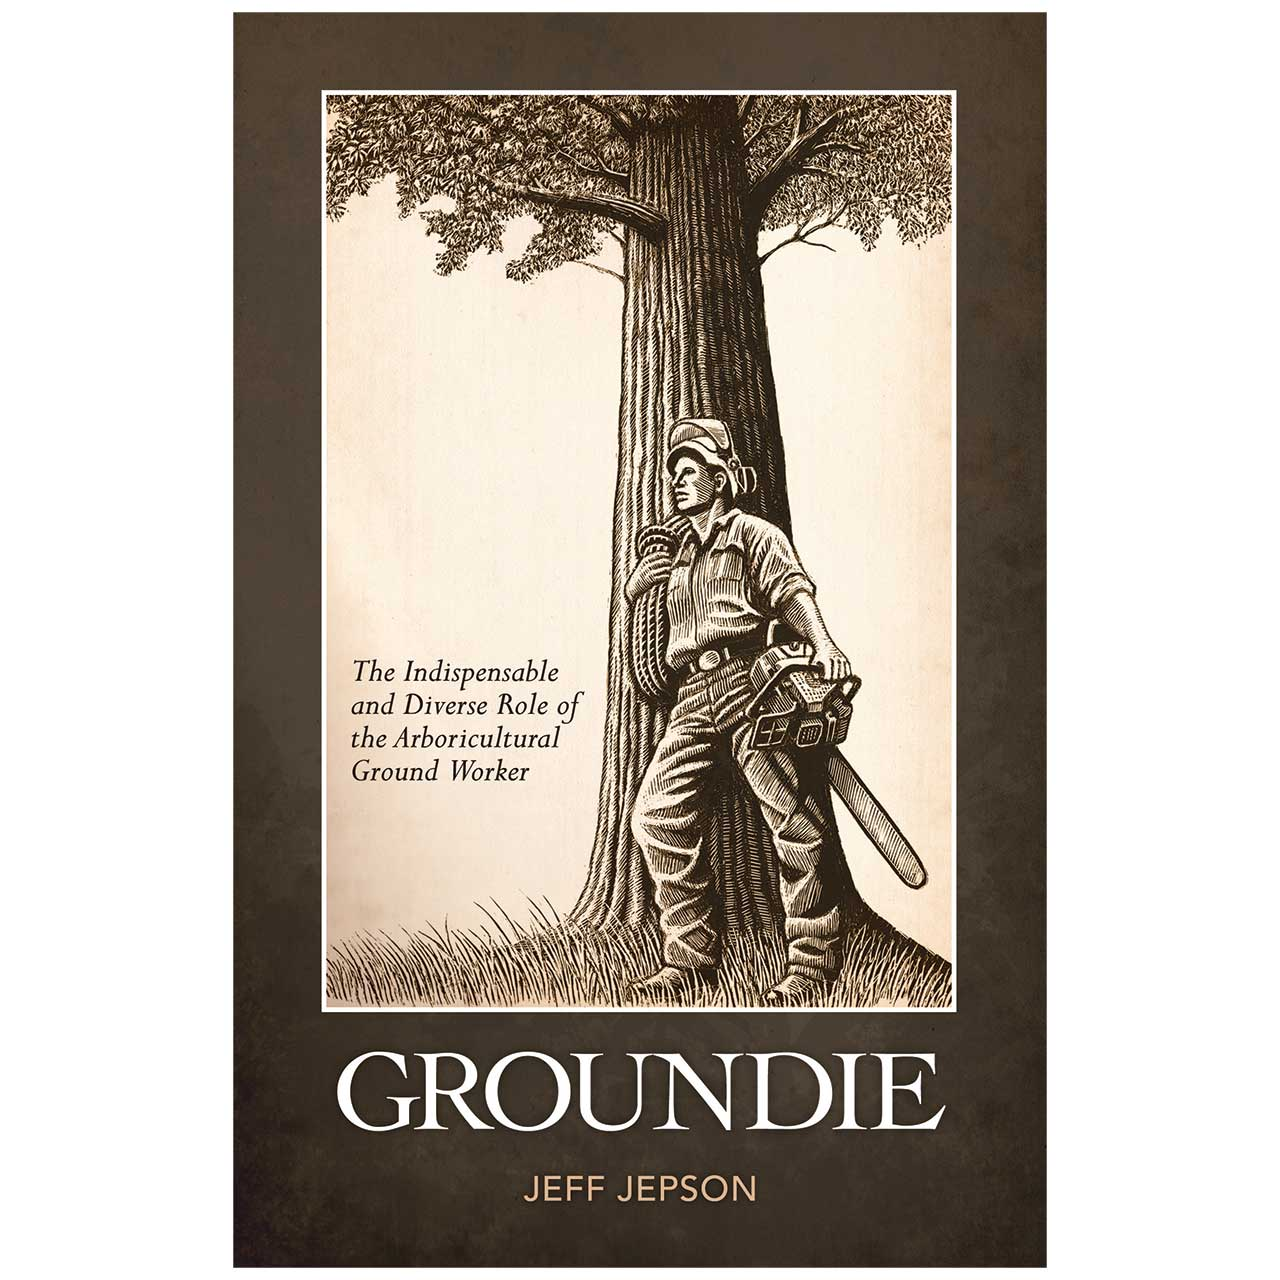 Groundie, by Jeff Jepson